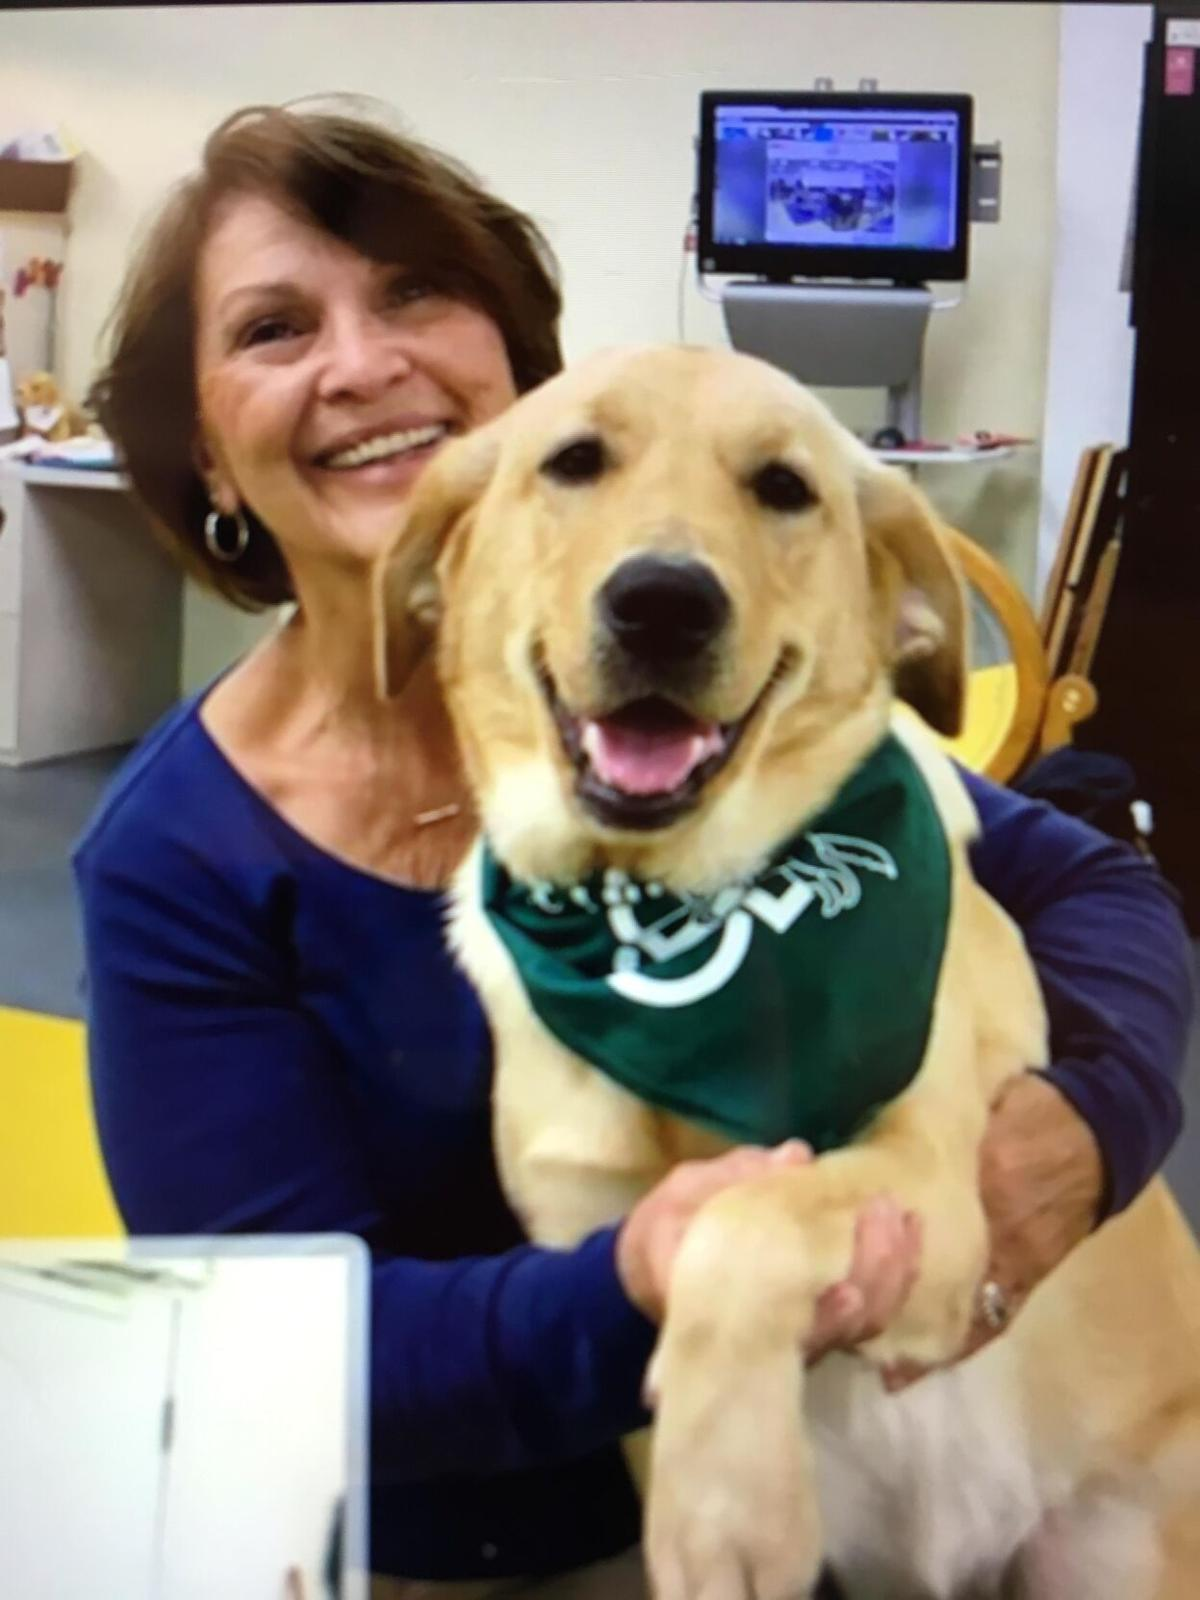 ECAD thanks Home Handlers for taking dogs into their homes